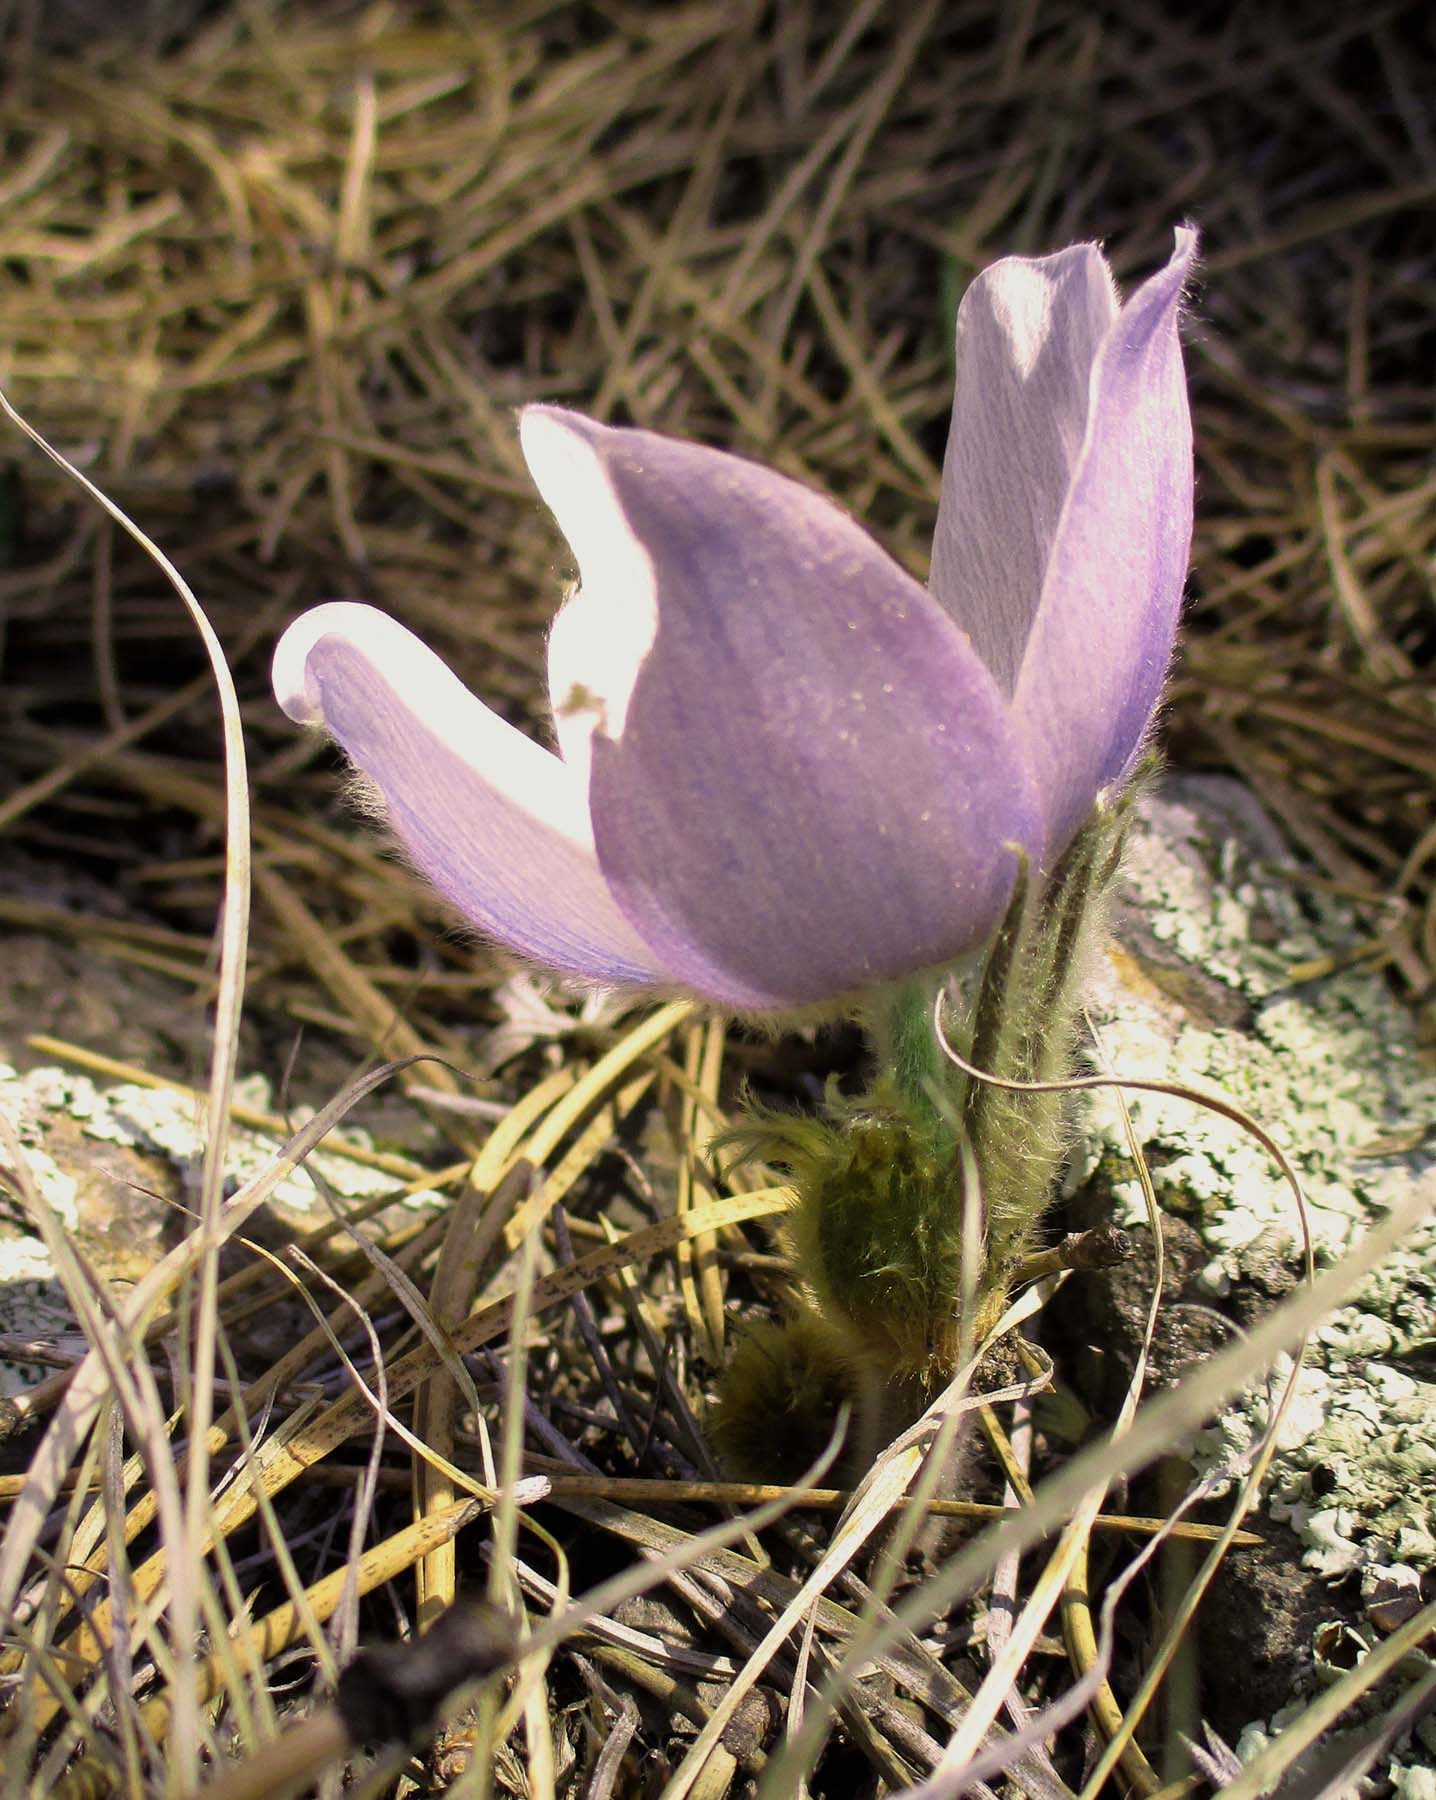 There were a few early blooming Pasque flowers making a showing on Easter Sunday as is typical. Look for a large spray of the state flower on the first real warm day this spring, just west of the Children's Home on Old Rockerville Road. The steep slopes are like a hanging garden of the lovely purple flowers for a very short time each year.